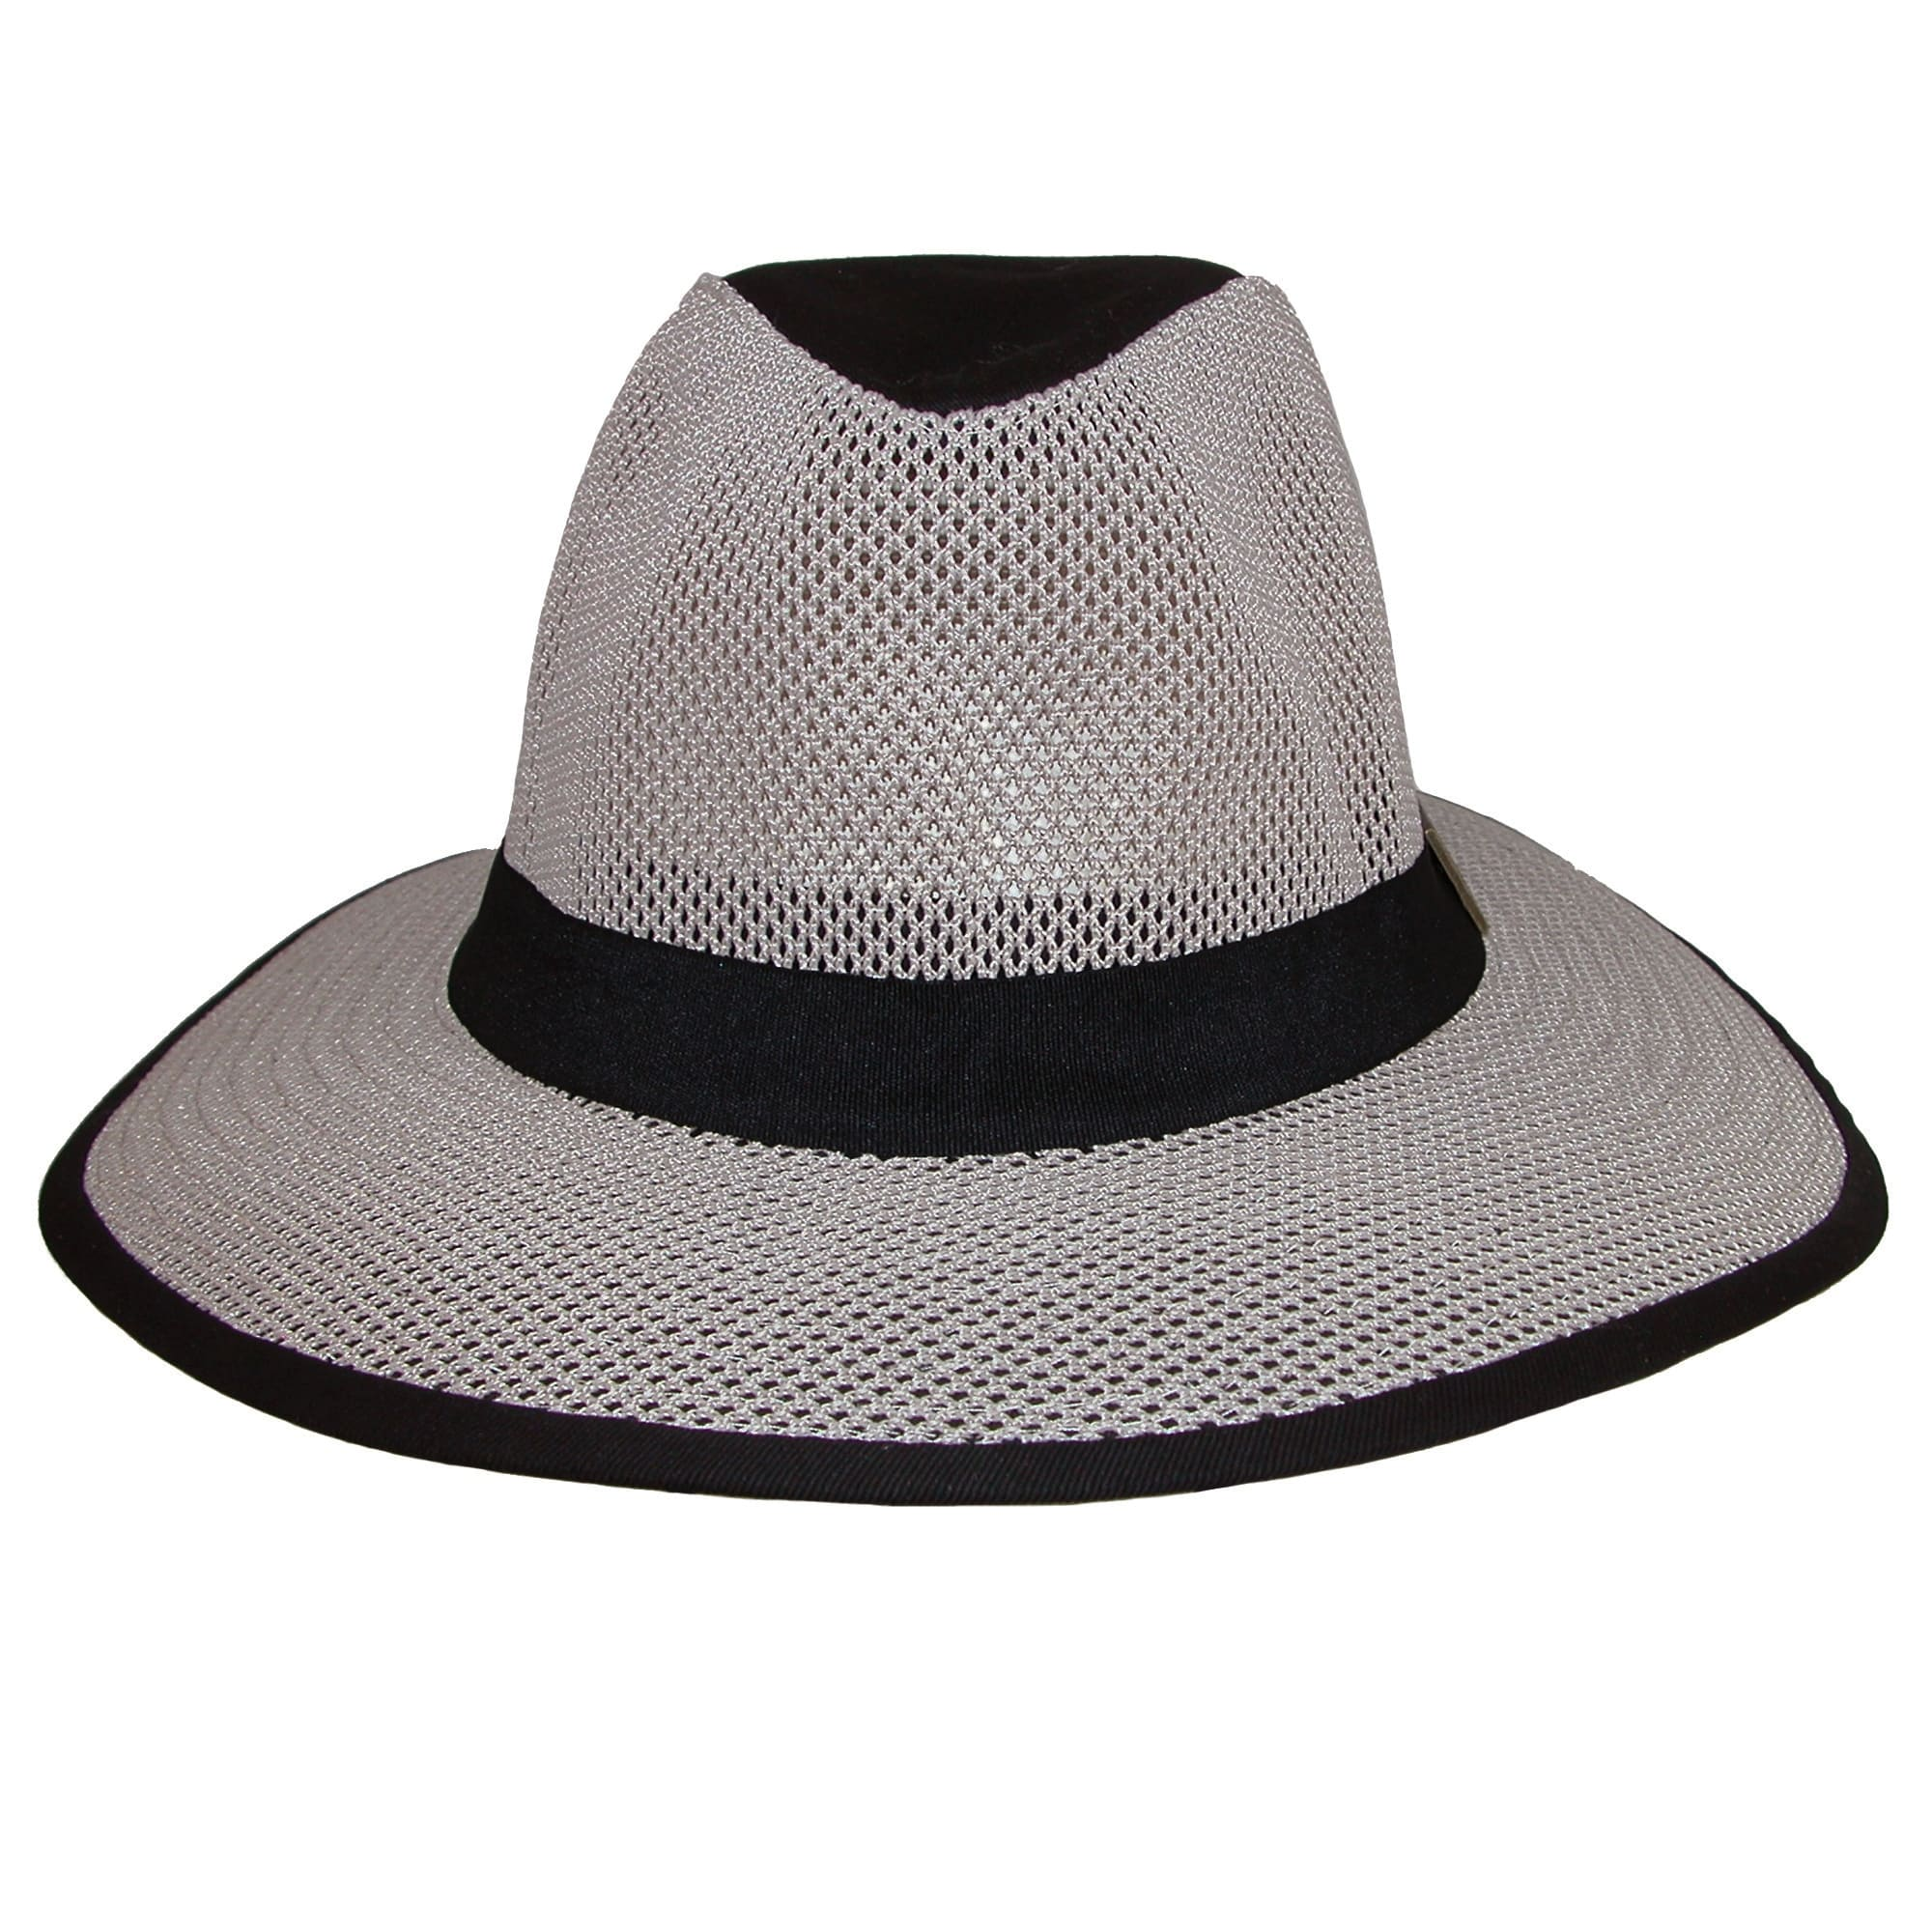 3e39d44726976 Shop Guy Harvey Men s Cotton Safari Hat with Mesh Crown and Matching Chin  Cord - Free Shipping On Orders Over  45 - Overstock - 20457801